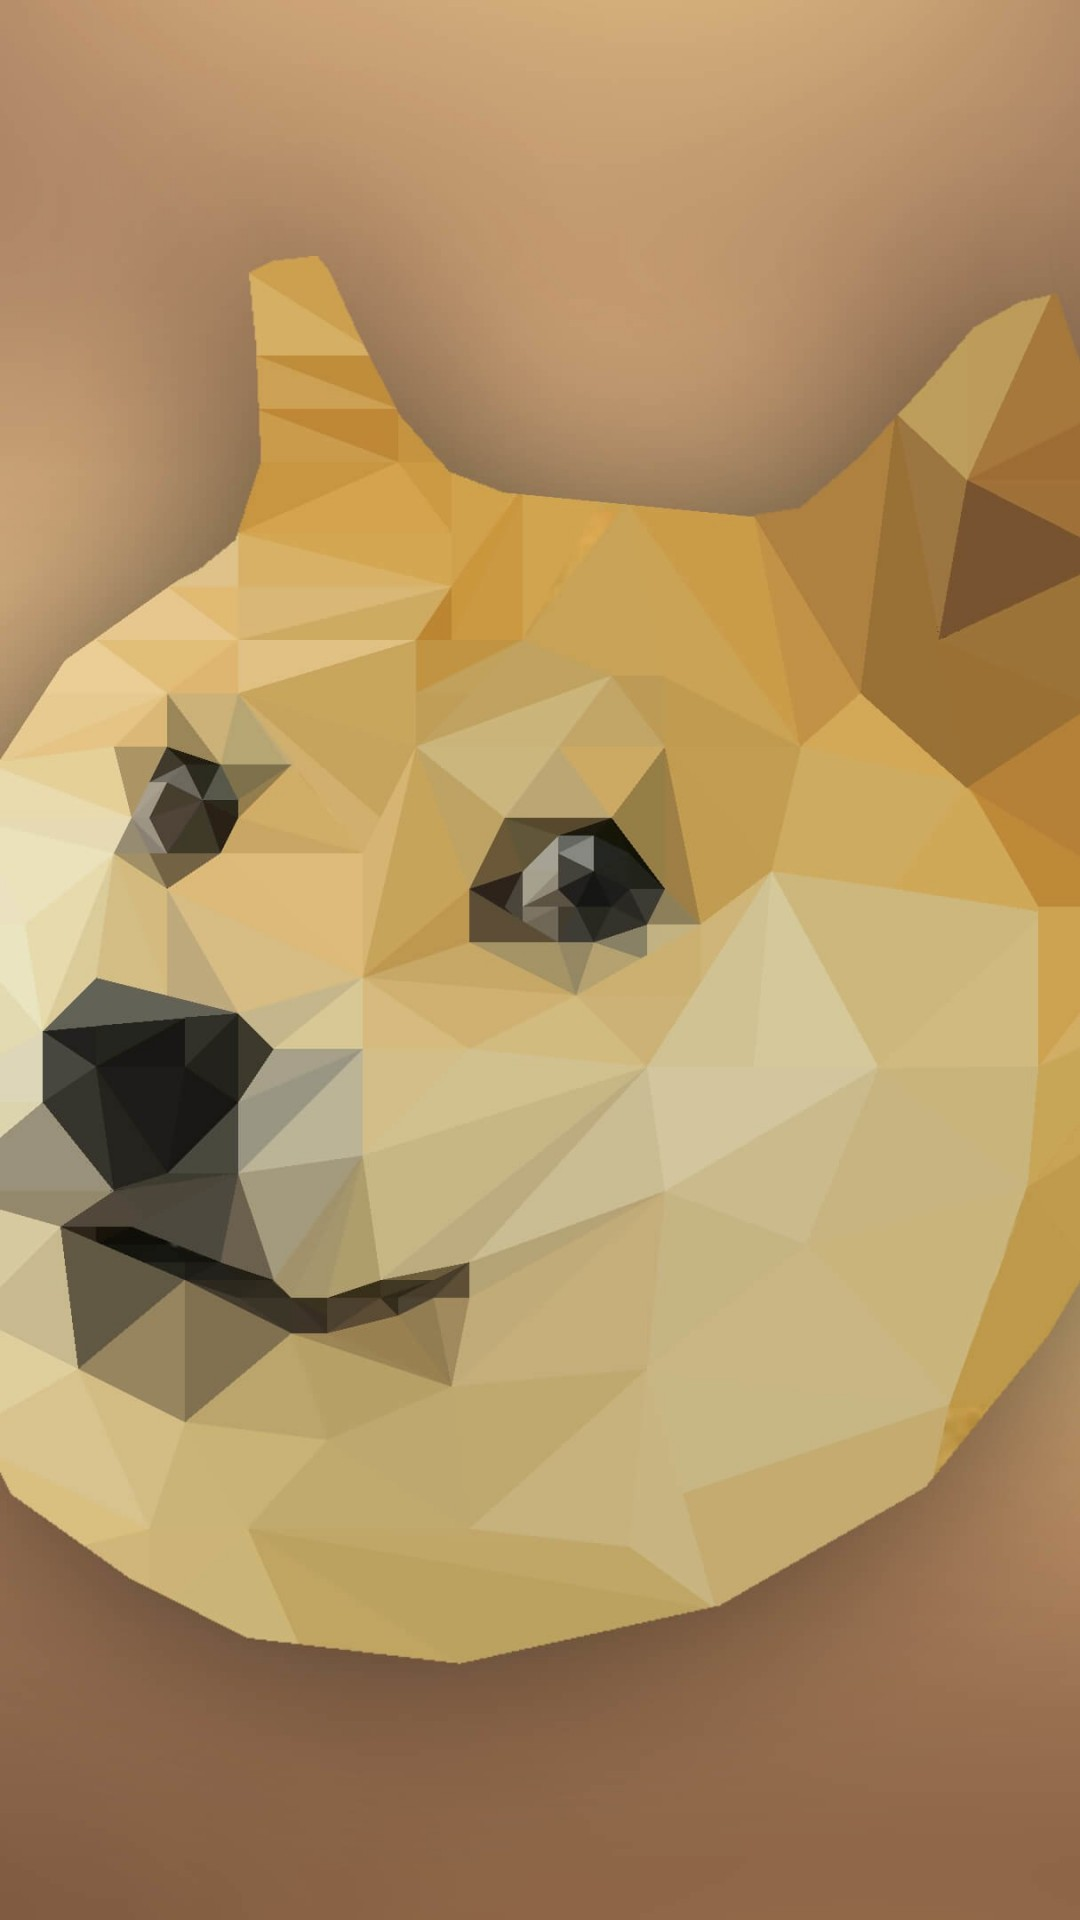 Low Poly Doge Wallpaper for Google Nexus 5X